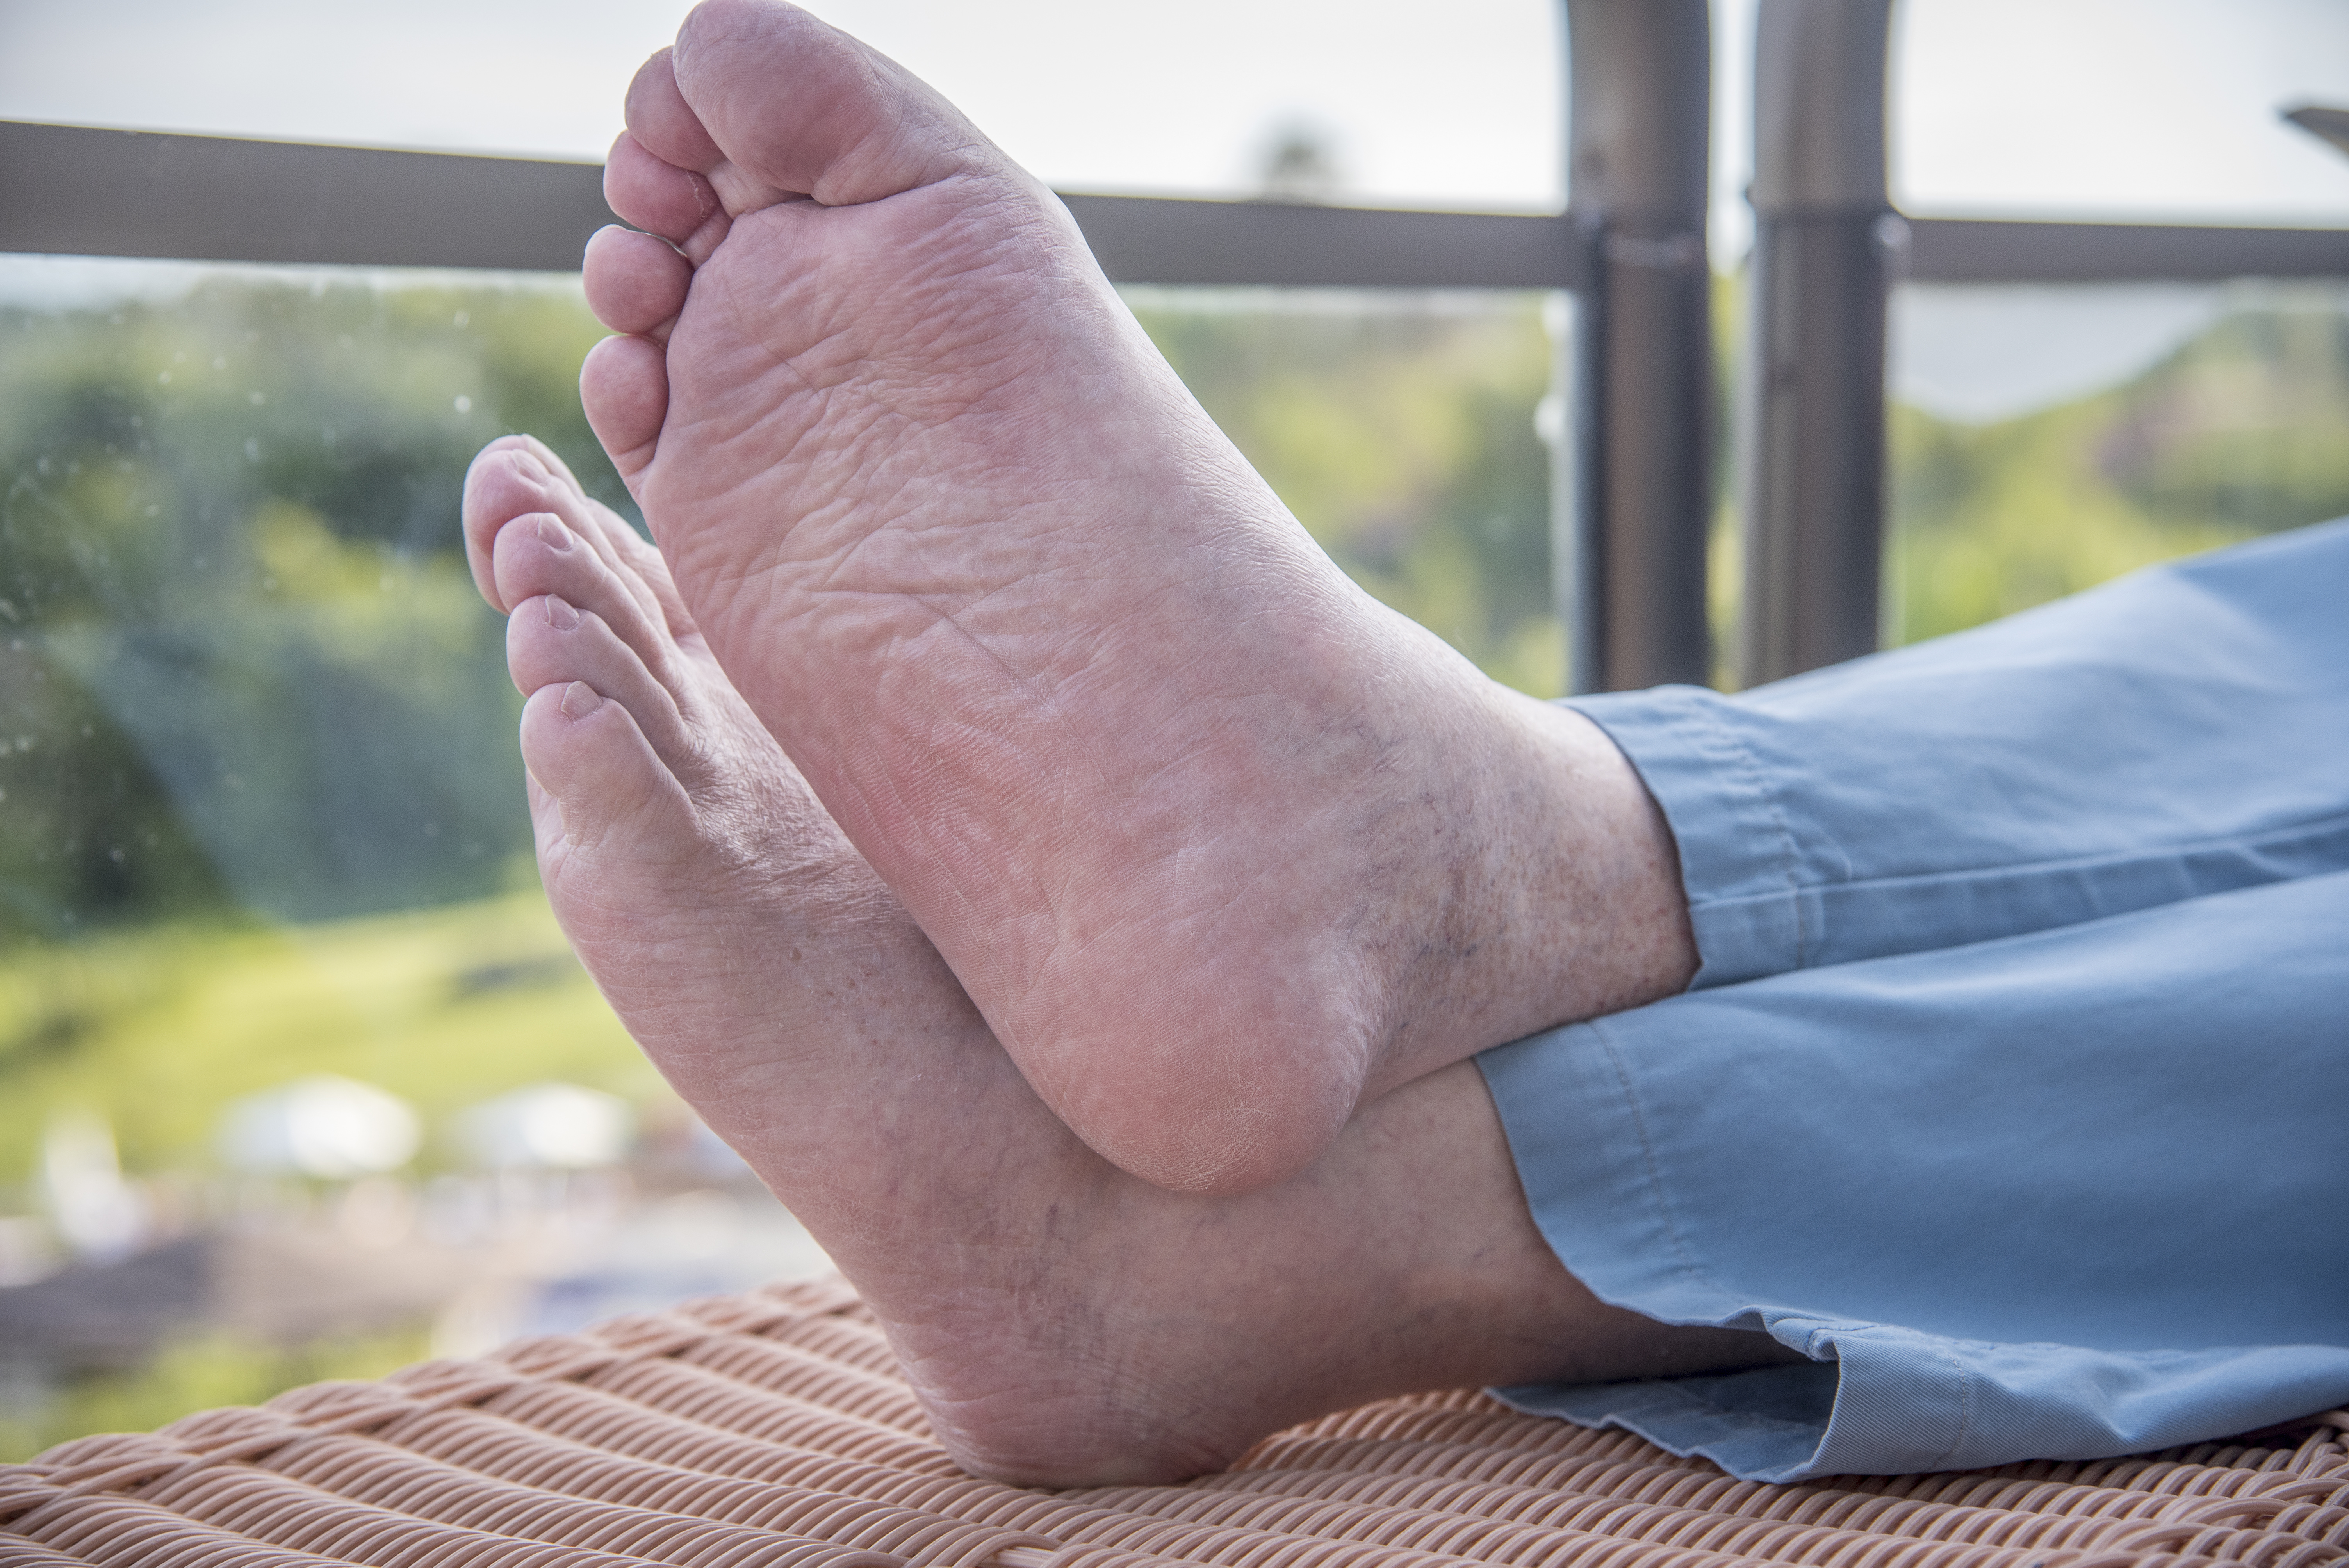 Study links flat feet to painful foot maladies